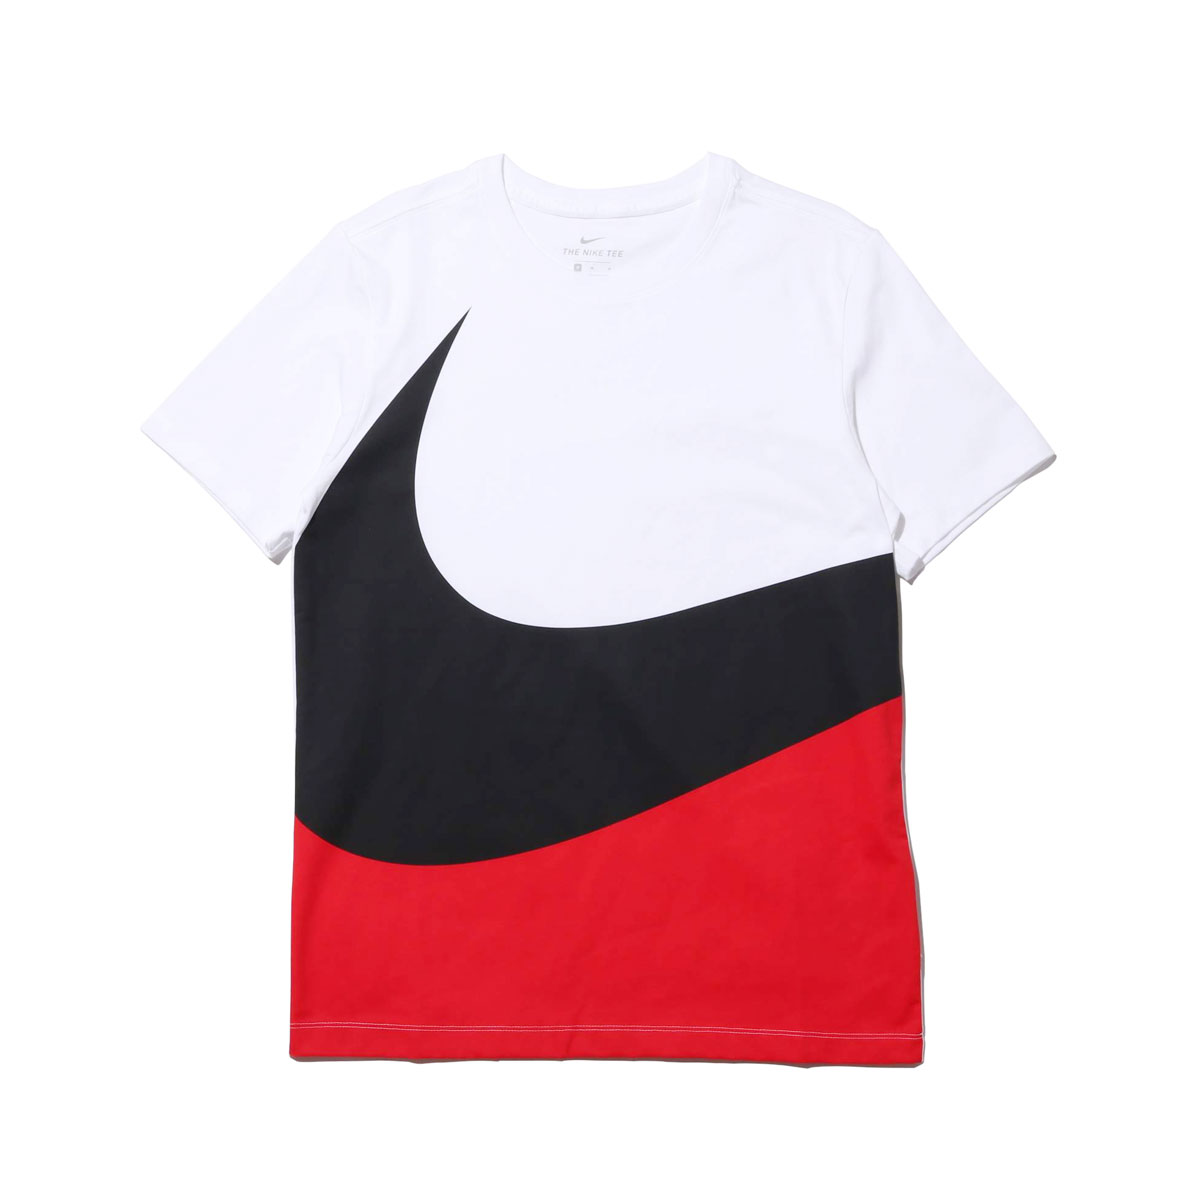 6a5c9df42 Kinetics: NIKE AS M NSW TEE HBR SWOOSH 1 (WHITE/UNIVERSITY RED/BLACK ...